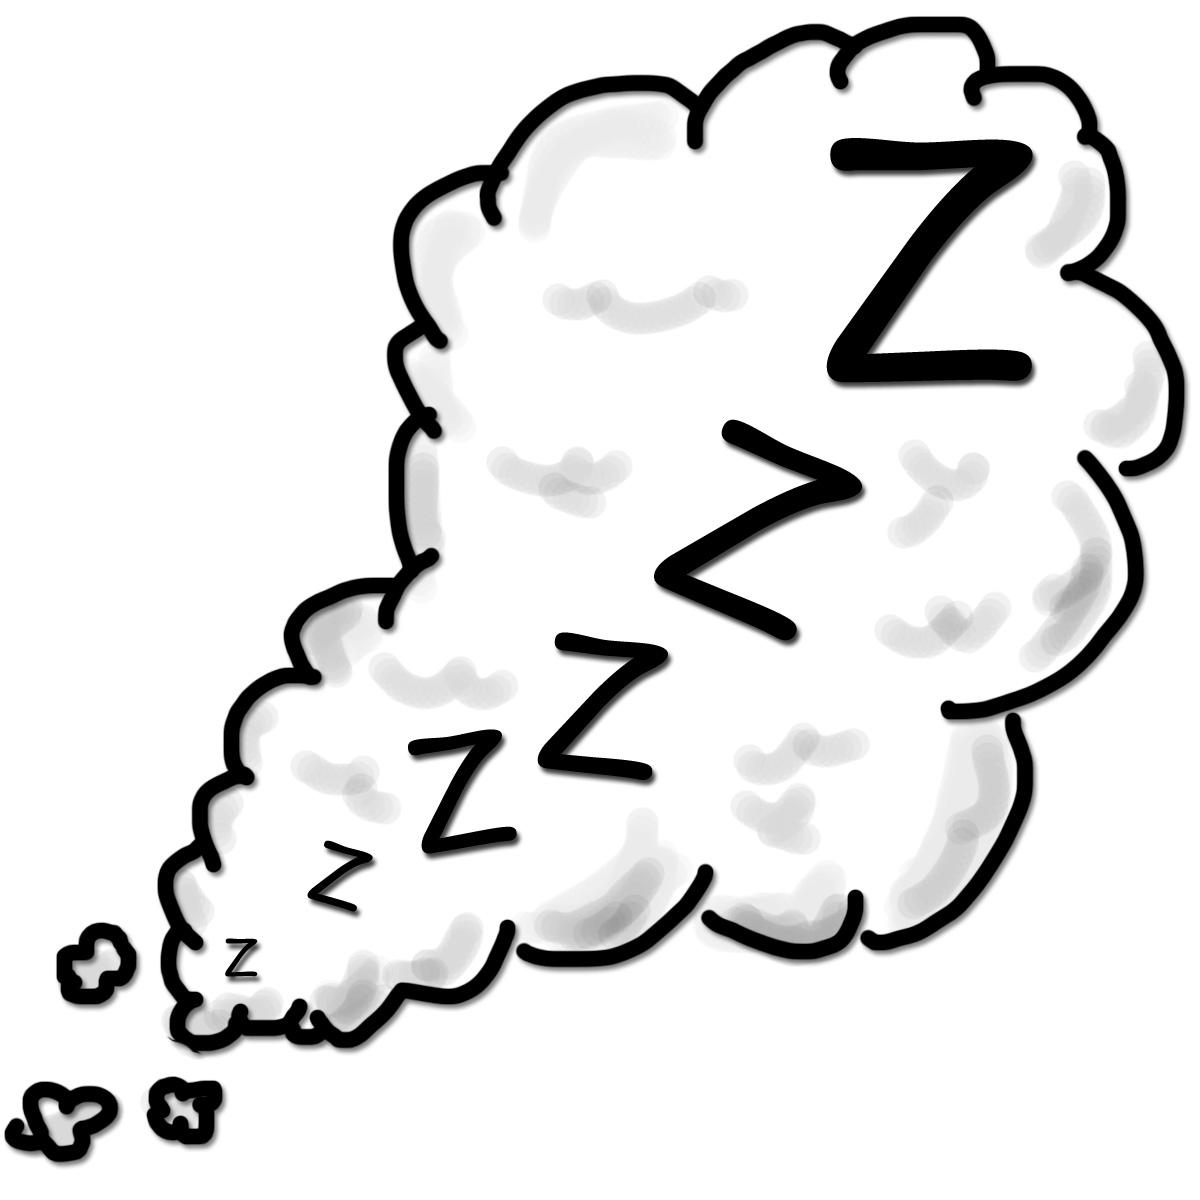 Sleep well at night, poor sleep quality? 3 acupuncture points, single Chinese medicine, help you to dawn